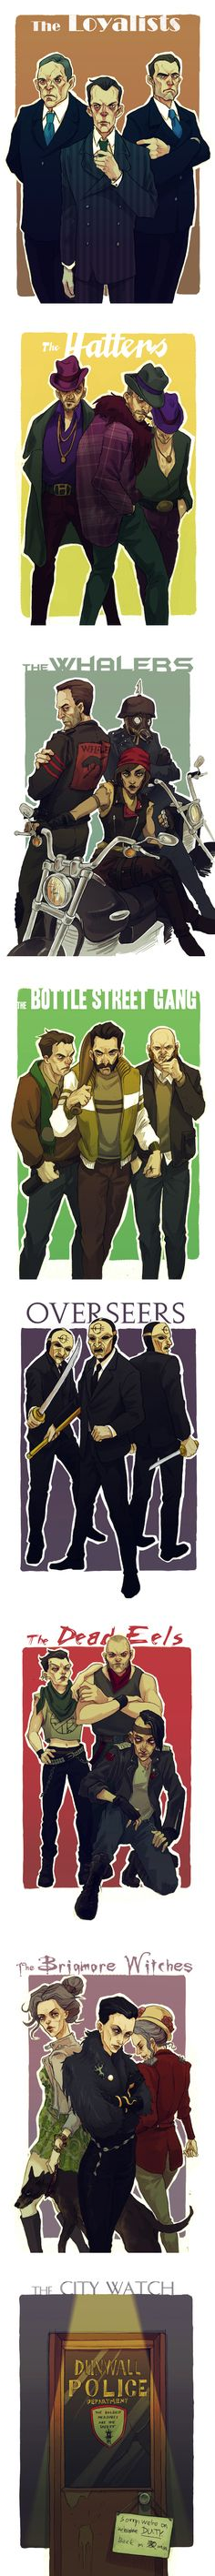 Dishonored AU: Modern-Day Gangs of Dunwall by MadLittleClown.deviantart.com on @deviantART